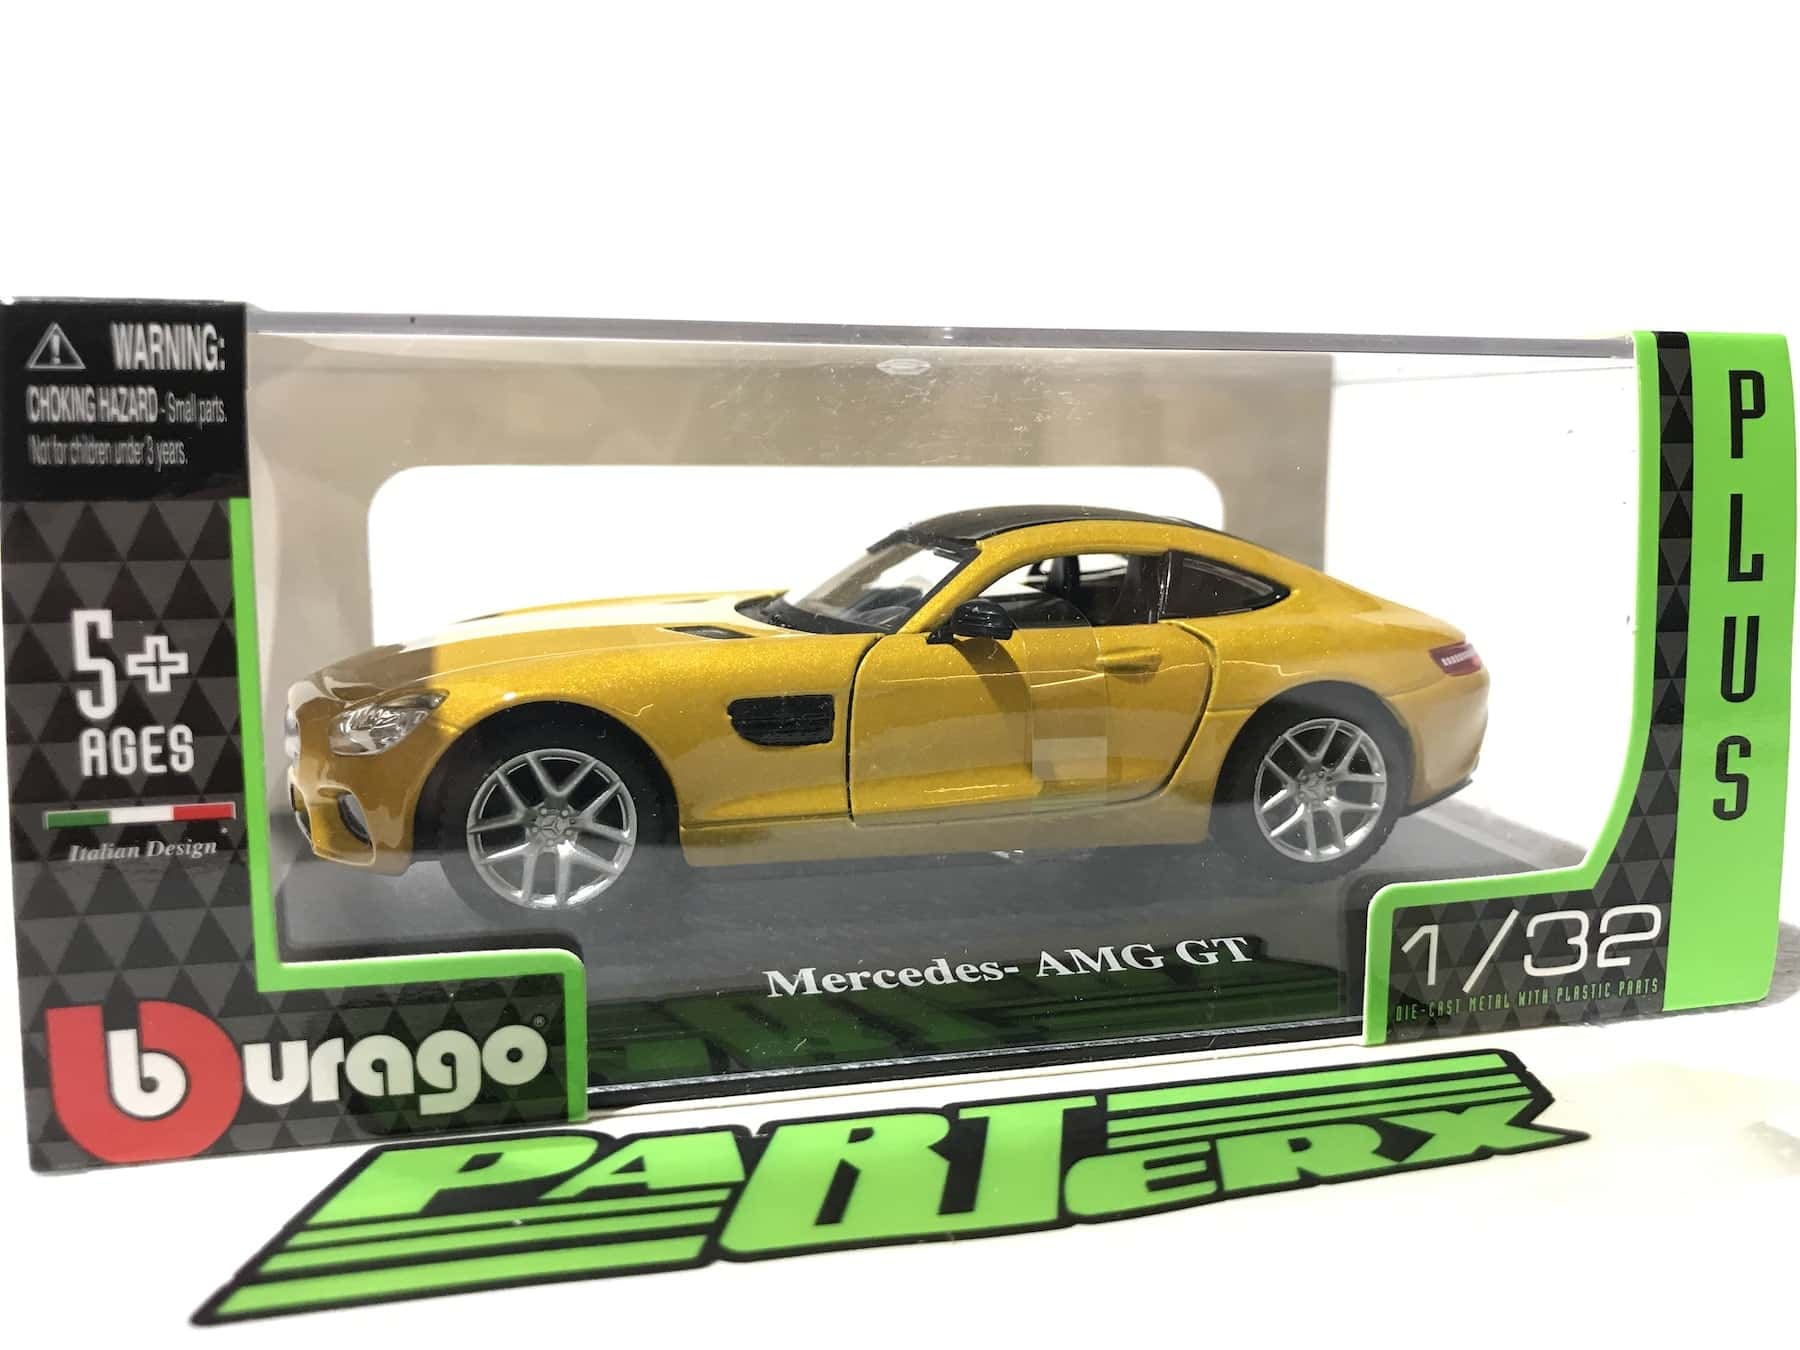 Mercedes Benz AMG GT 1:32 Porsche 911 Scale Model Toy Gift Birthday Present